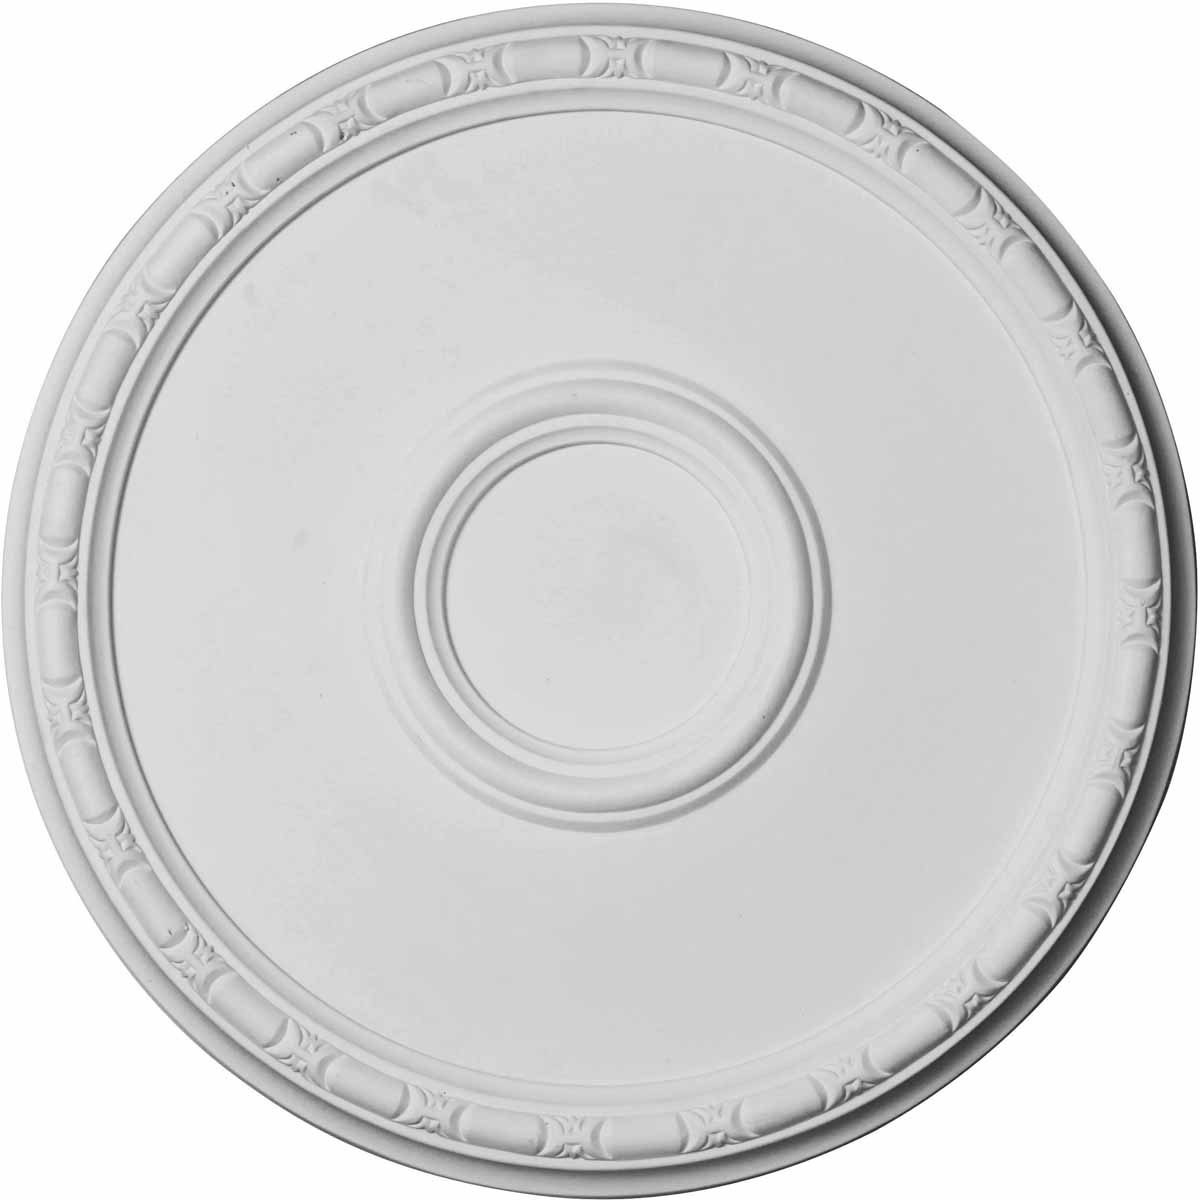 """EM-CM20OD - 19 3/4""""OD x 1 3/8""""P Odessa Bead & Barrel Ceiling Medallion (Fits Canopies up to 5"""")"""